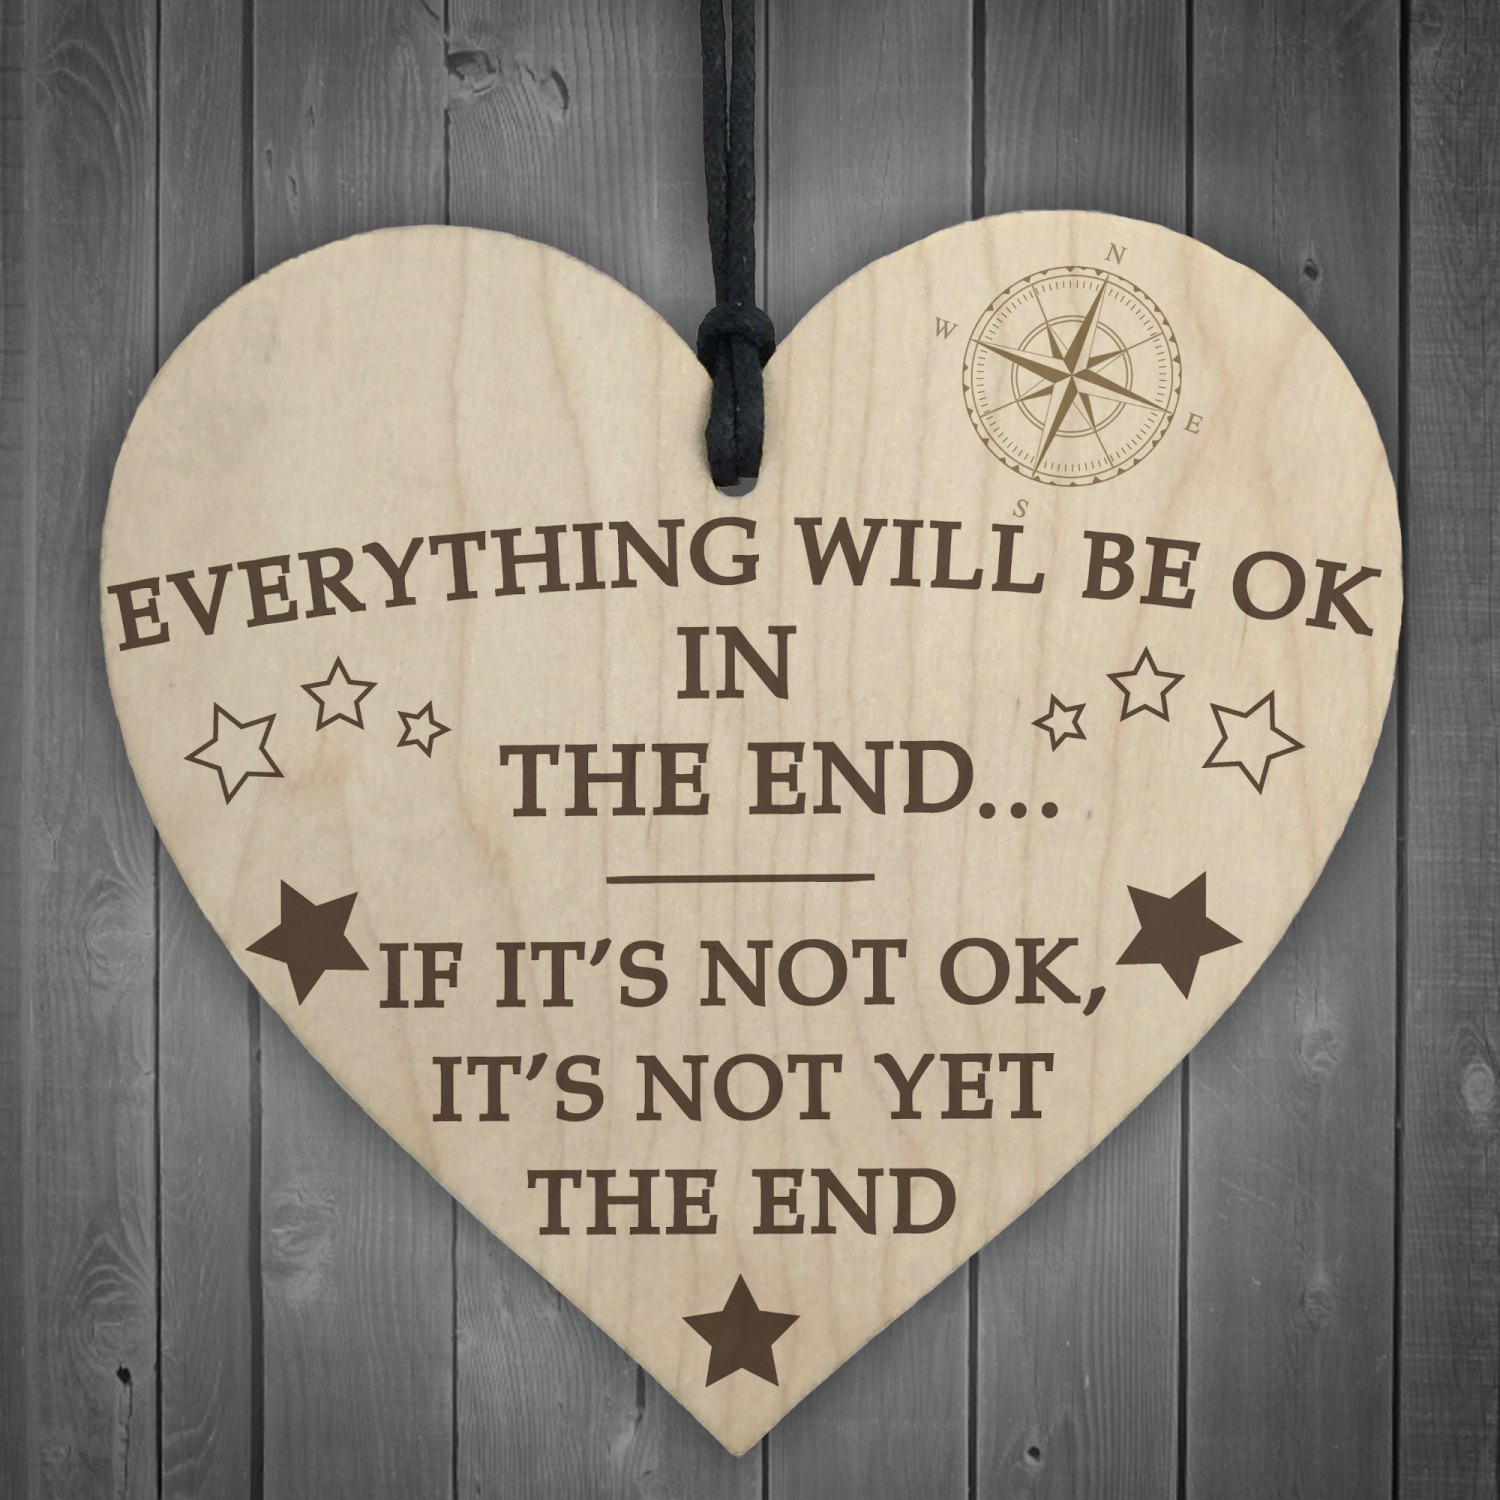 Wood Okay Will Hanging Sign The Gift Heart In Everything Be End qSULGVzMp